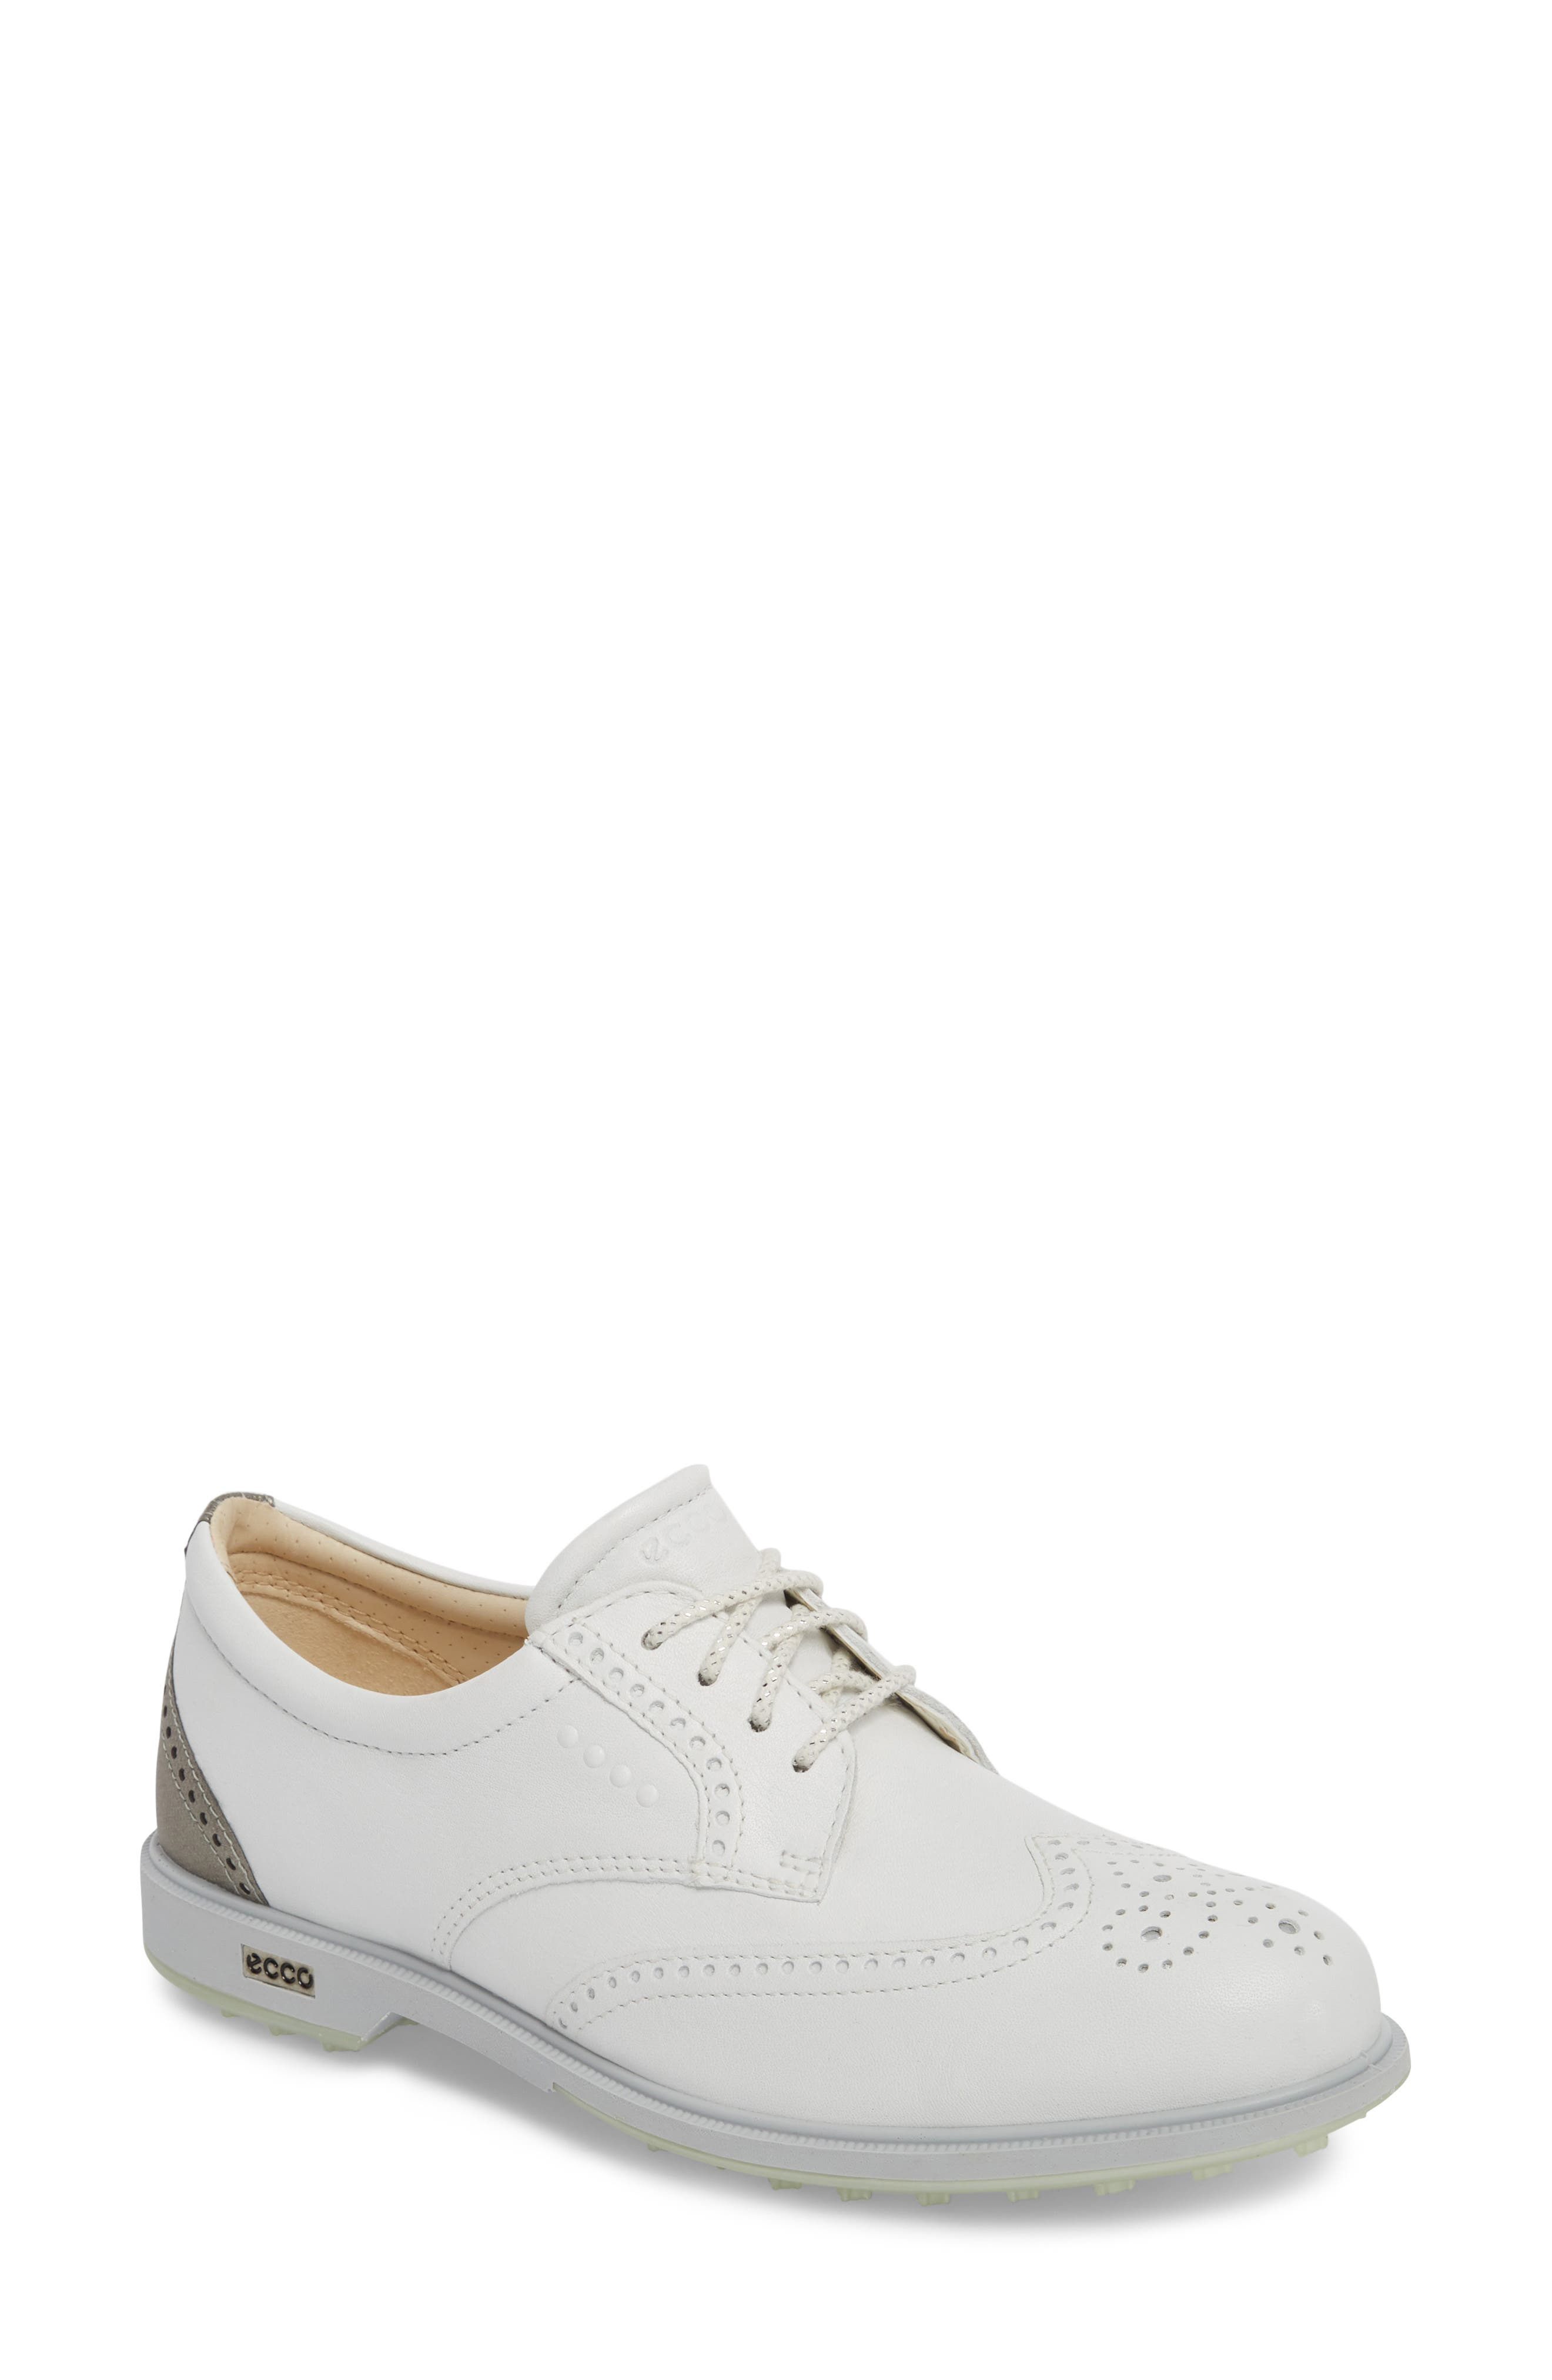 'Tour' Hybrid Wingtip Golf Shoe,                             Main thumbnail 1, color,                             WHITE LEATHER/ GREY